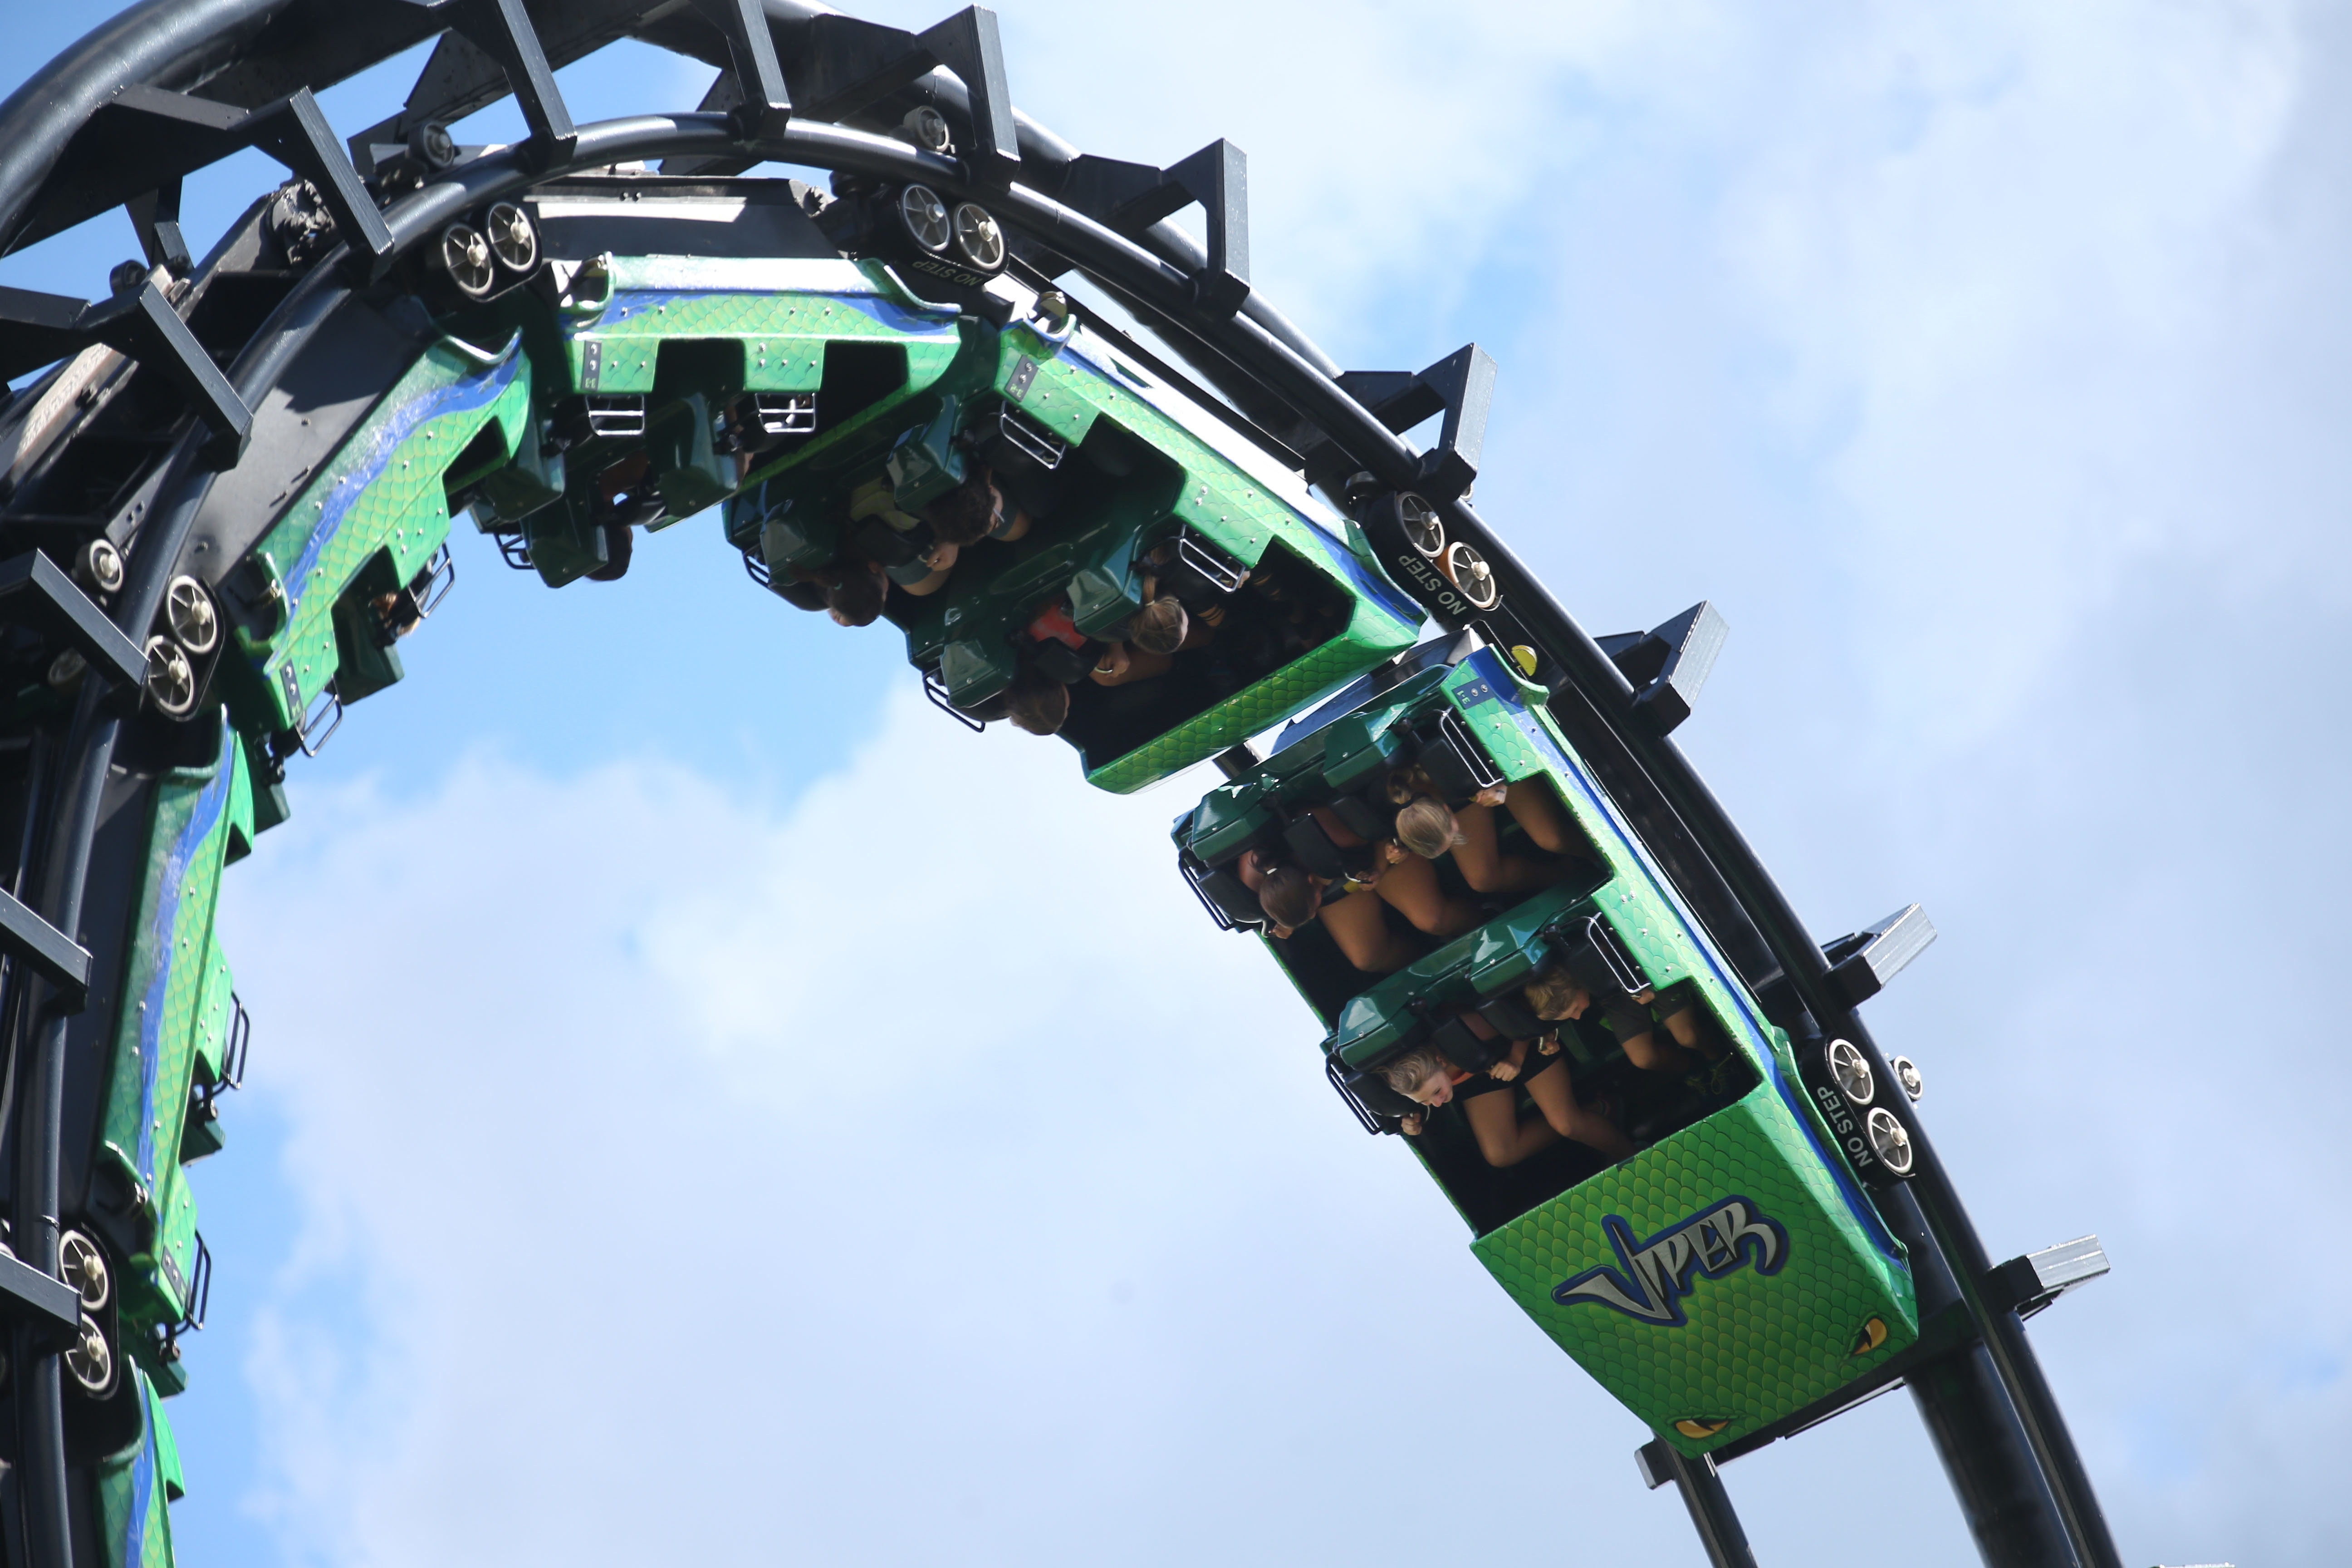 Darien Lake's oldest roller coaster, the Viper, which turned 34 this year is still considered by some to be the best ride in the park.  Visitors enjoy the ride, Thursday, Sept. 1, 2016.  There are several points along the ride where the riders are upside down.  (Sharon Cantillon/Buffalo News)